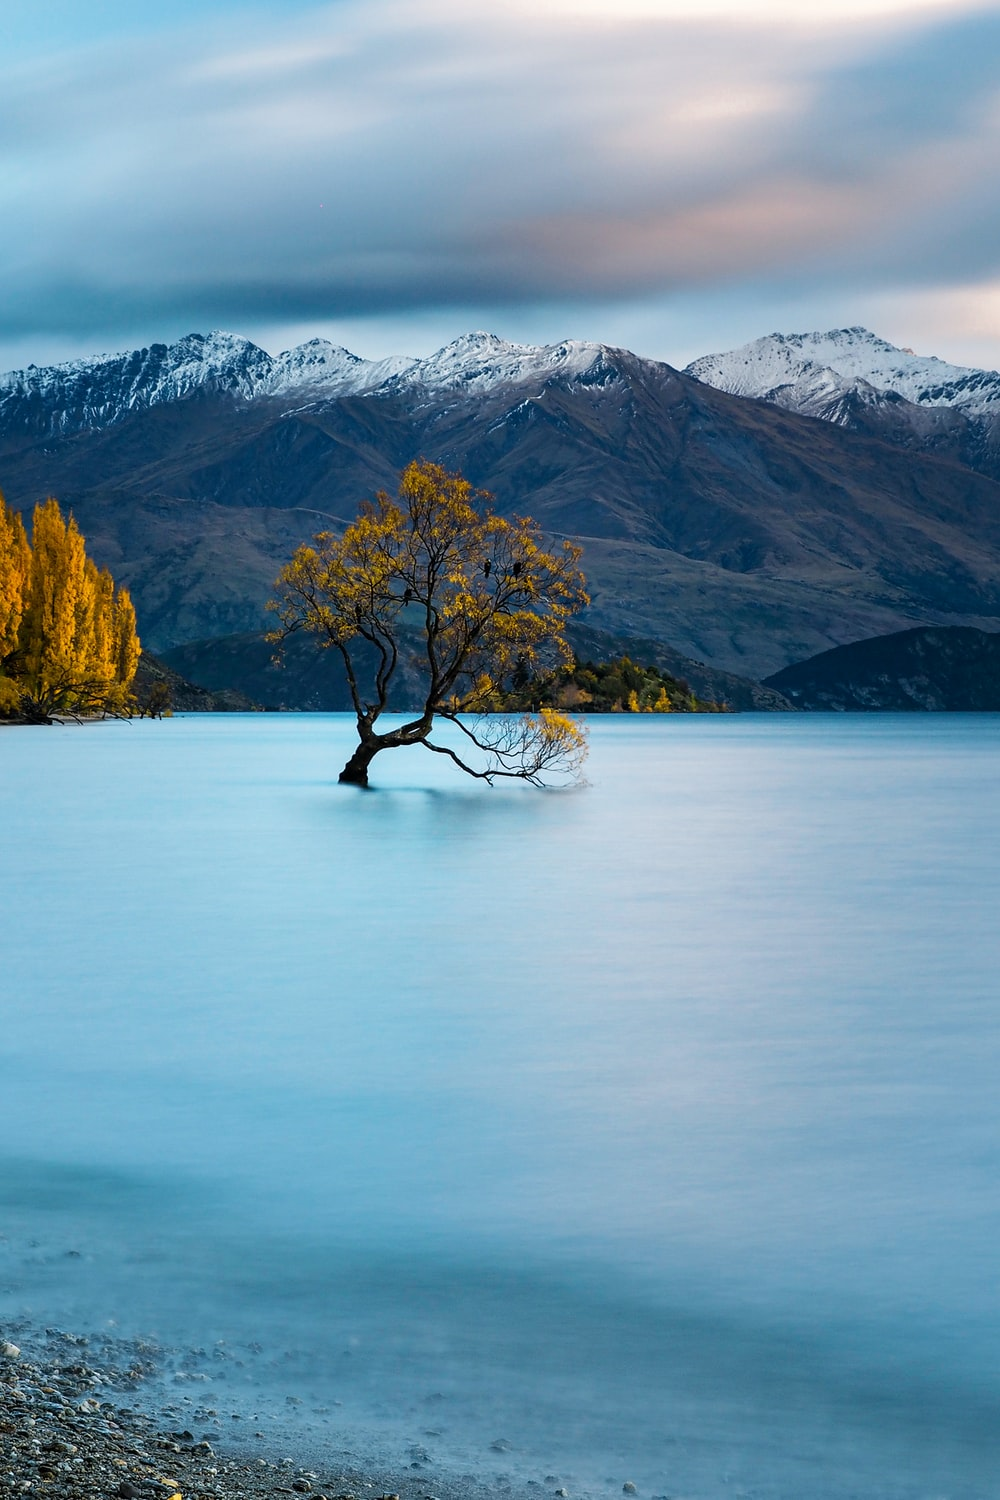 brown tree on body of water near mountain during daytime